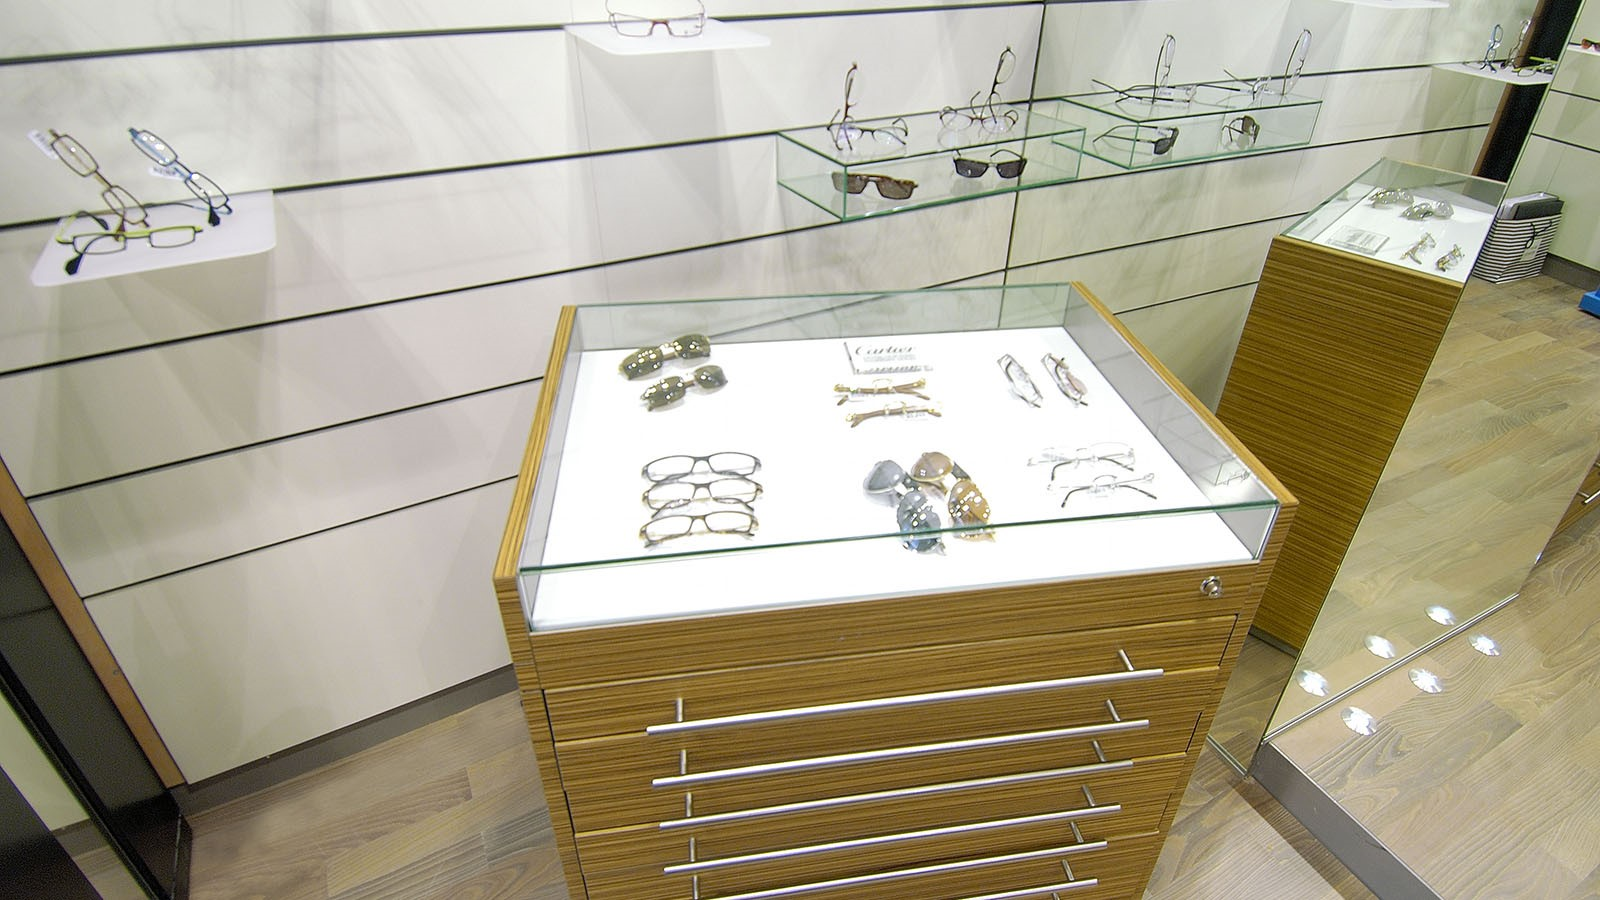 Boutique Optique Scribe Nantes Efi Design (2)